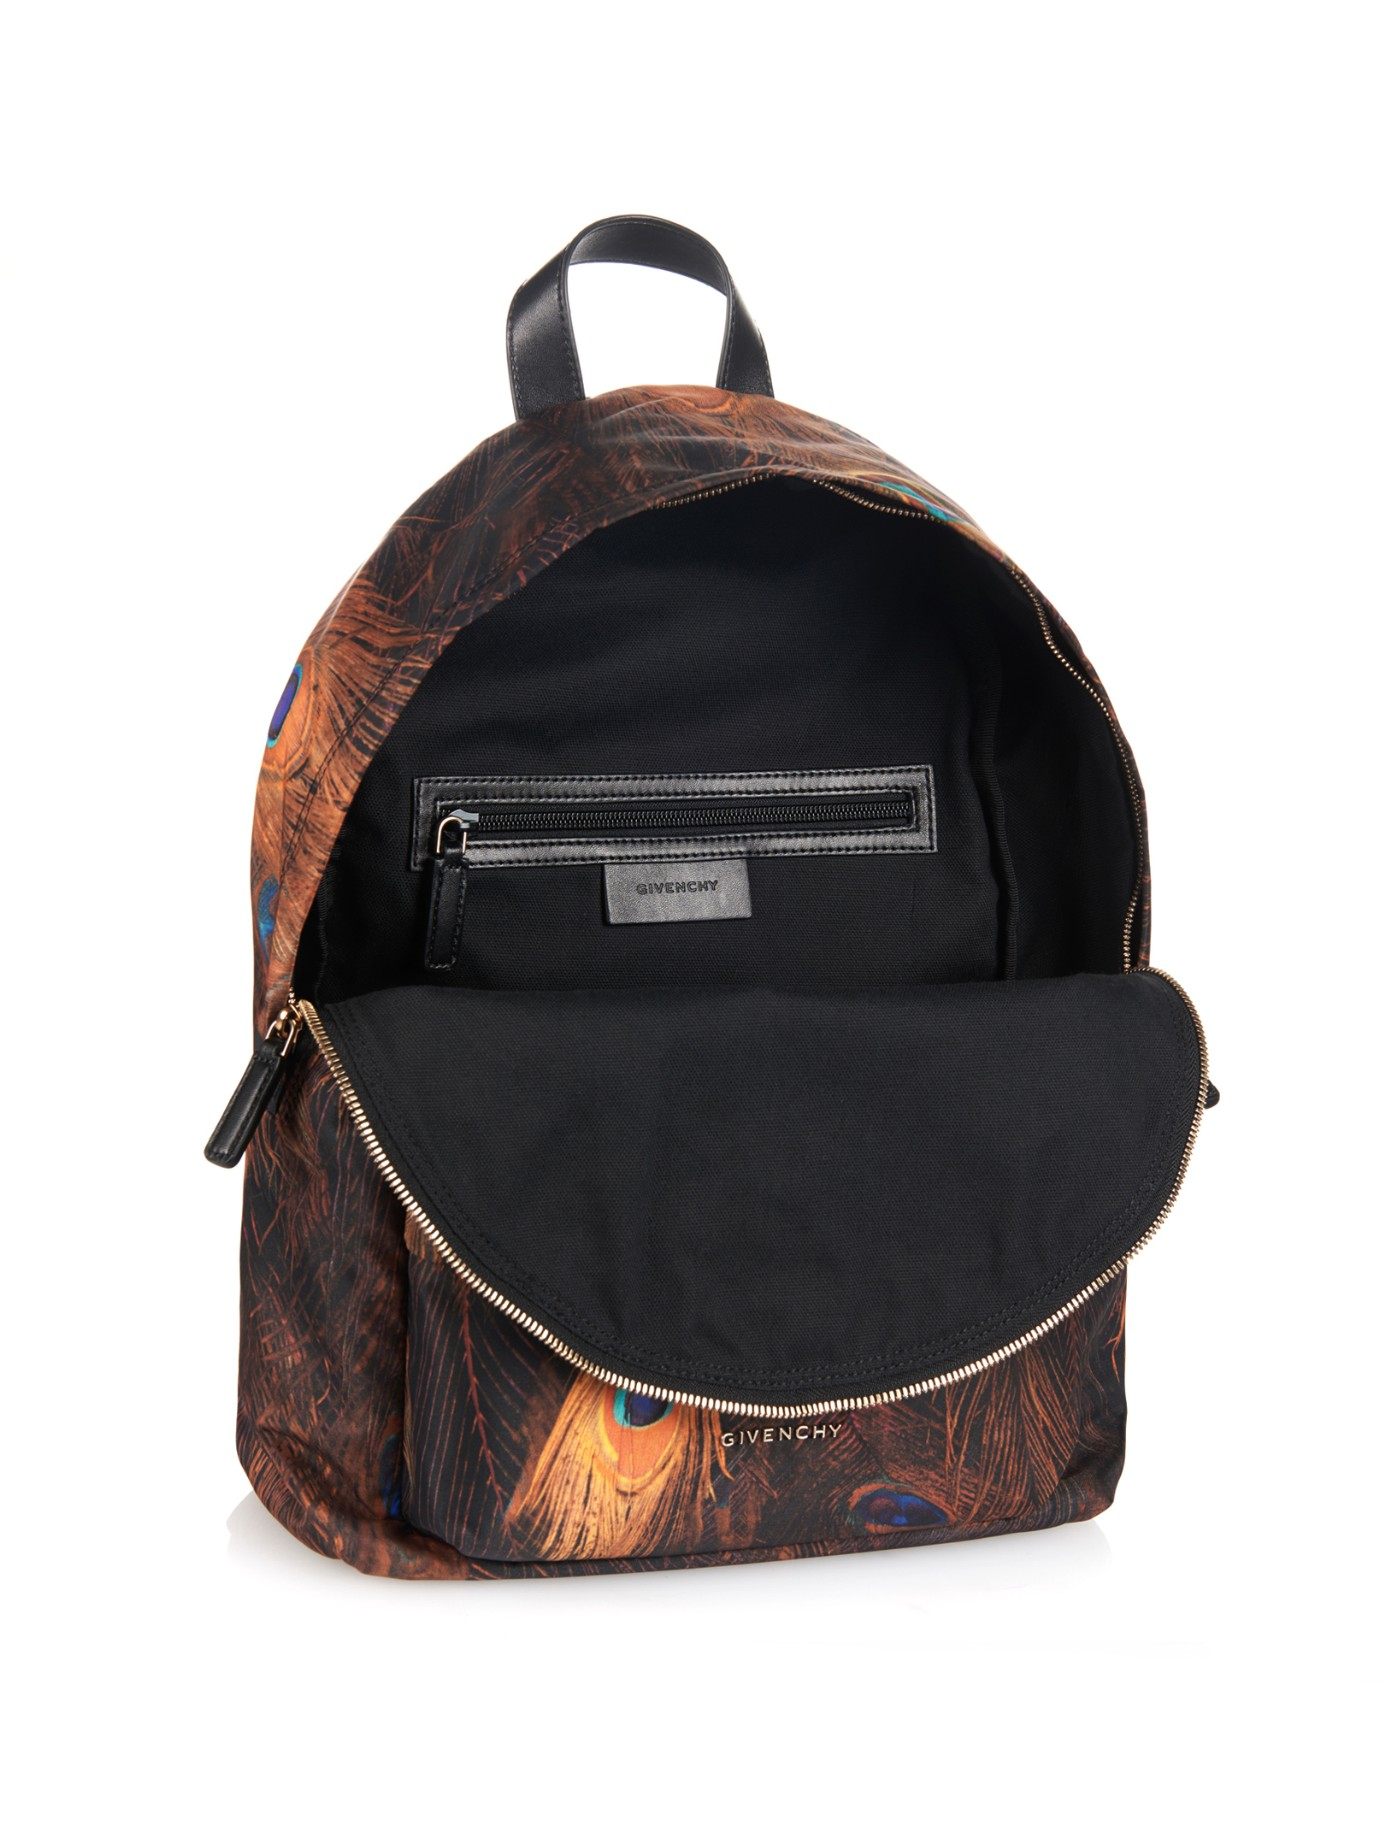 lyst givenchy peacockprint nylon and leather backpack